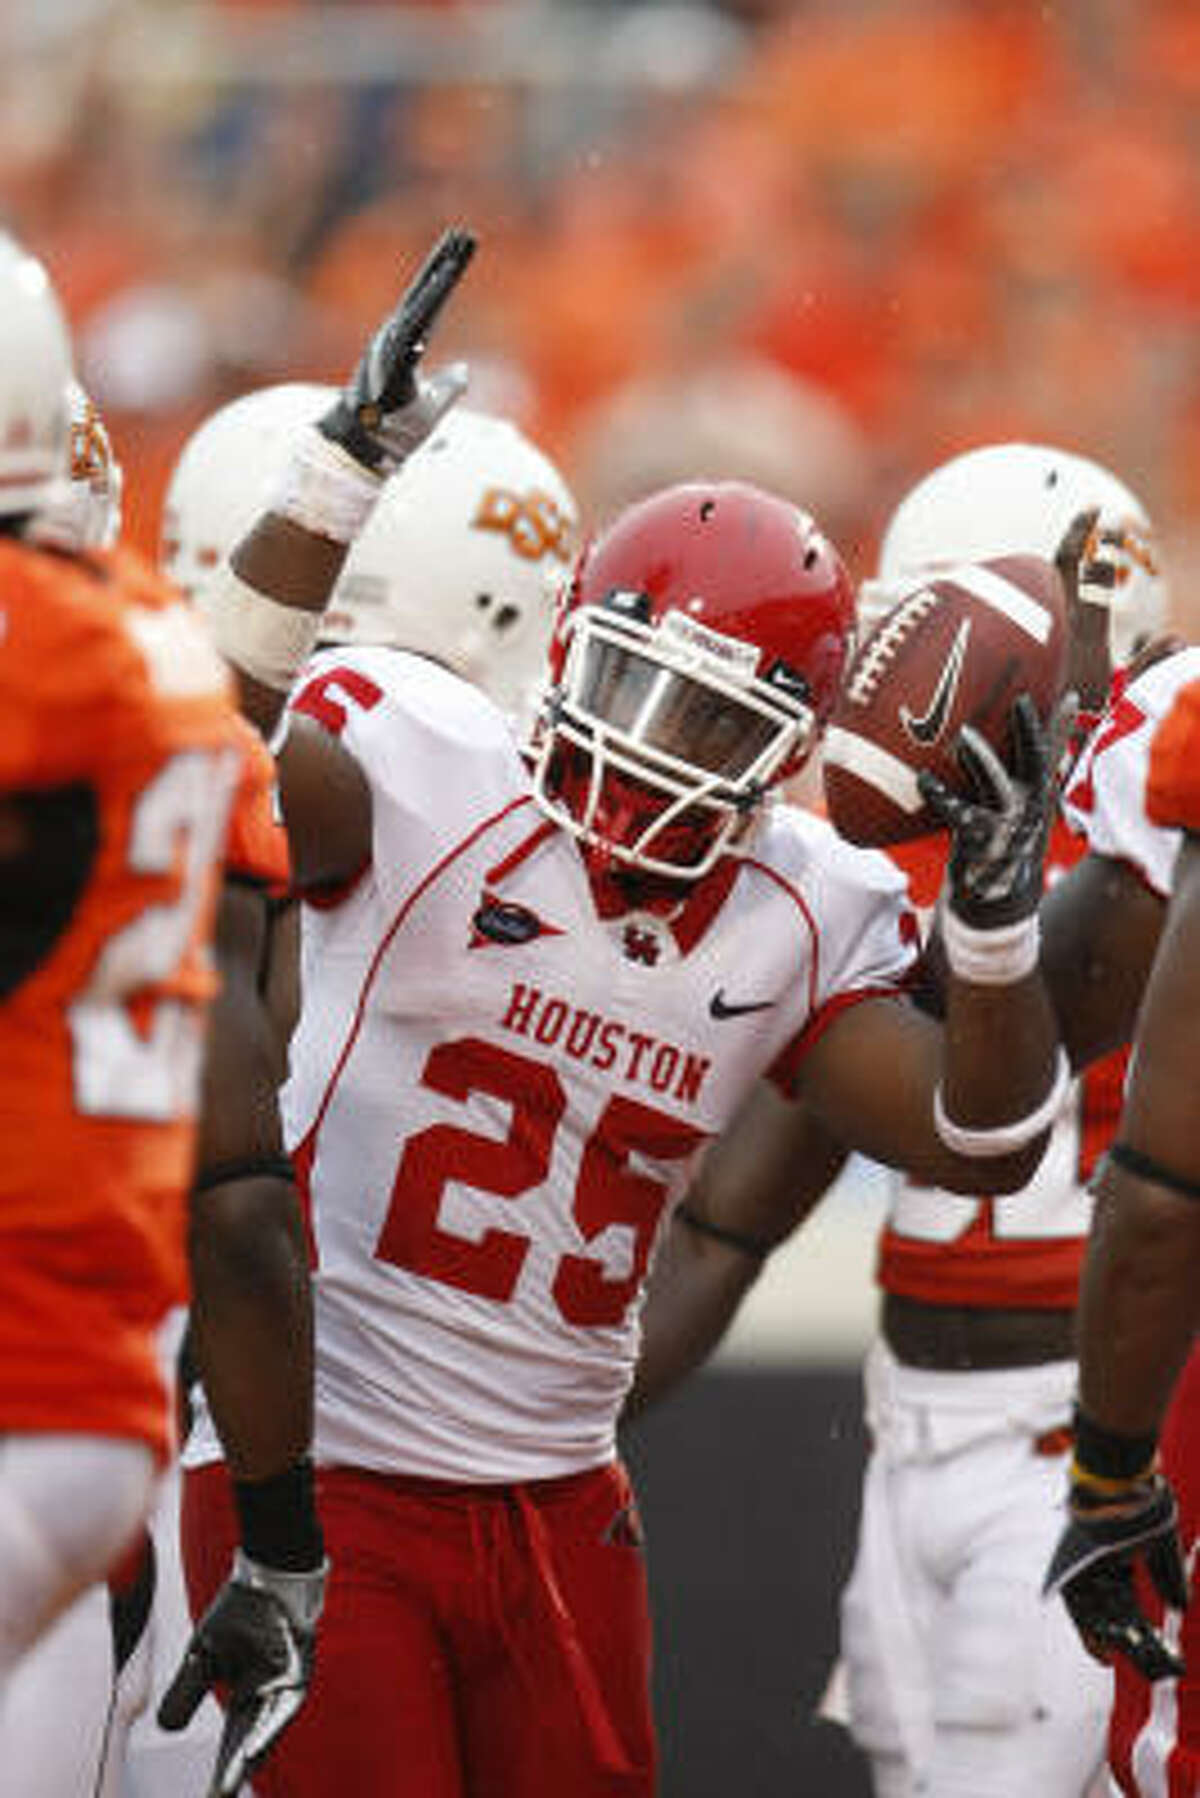 Houston running back Bryce Beall looks to the ref for the touchdown signal in the third quarter of Saturday's game against Oklahoma State.